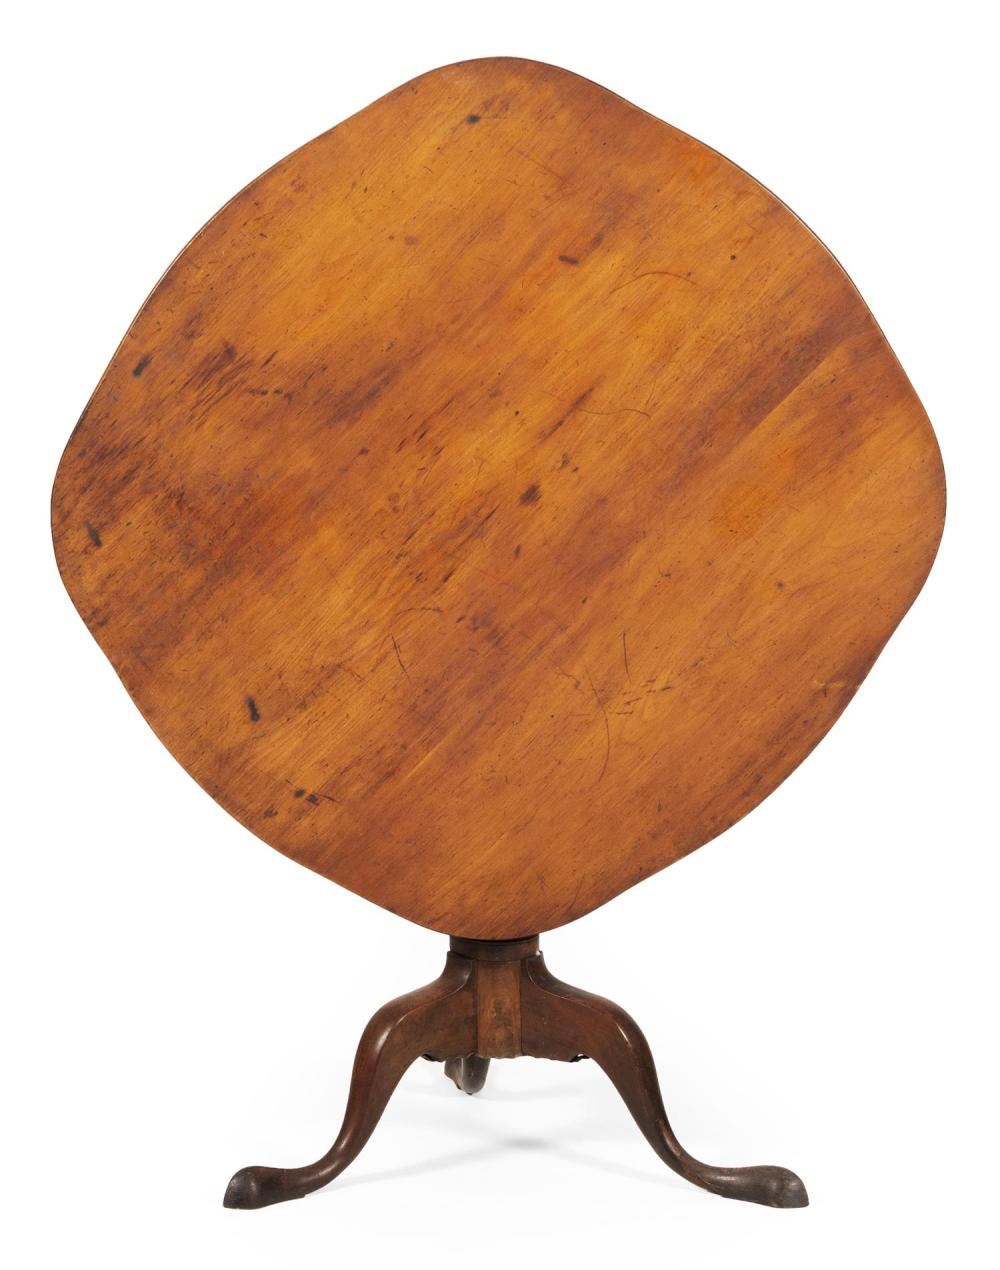 QUEEN ANNE TILT-TOP TABLE In mahogany and pine under a brown stain. Oval top. Turned pedestal on cabriole legs ending in pad feet. H...